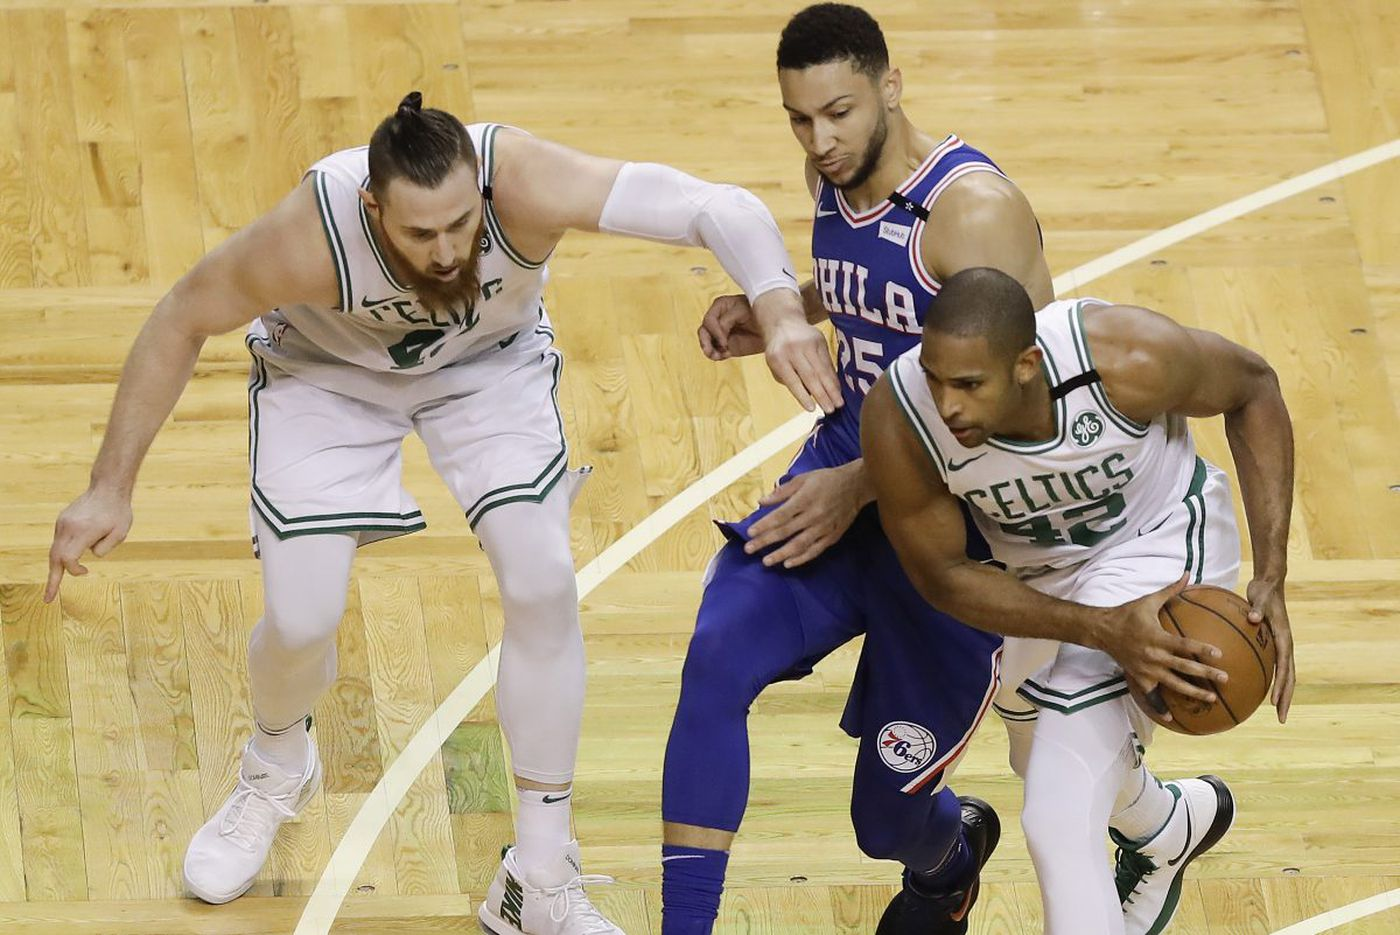 Sixers blow 22-point lead, lose to Celtics to fall behind 2-0 in NBA playoffs series